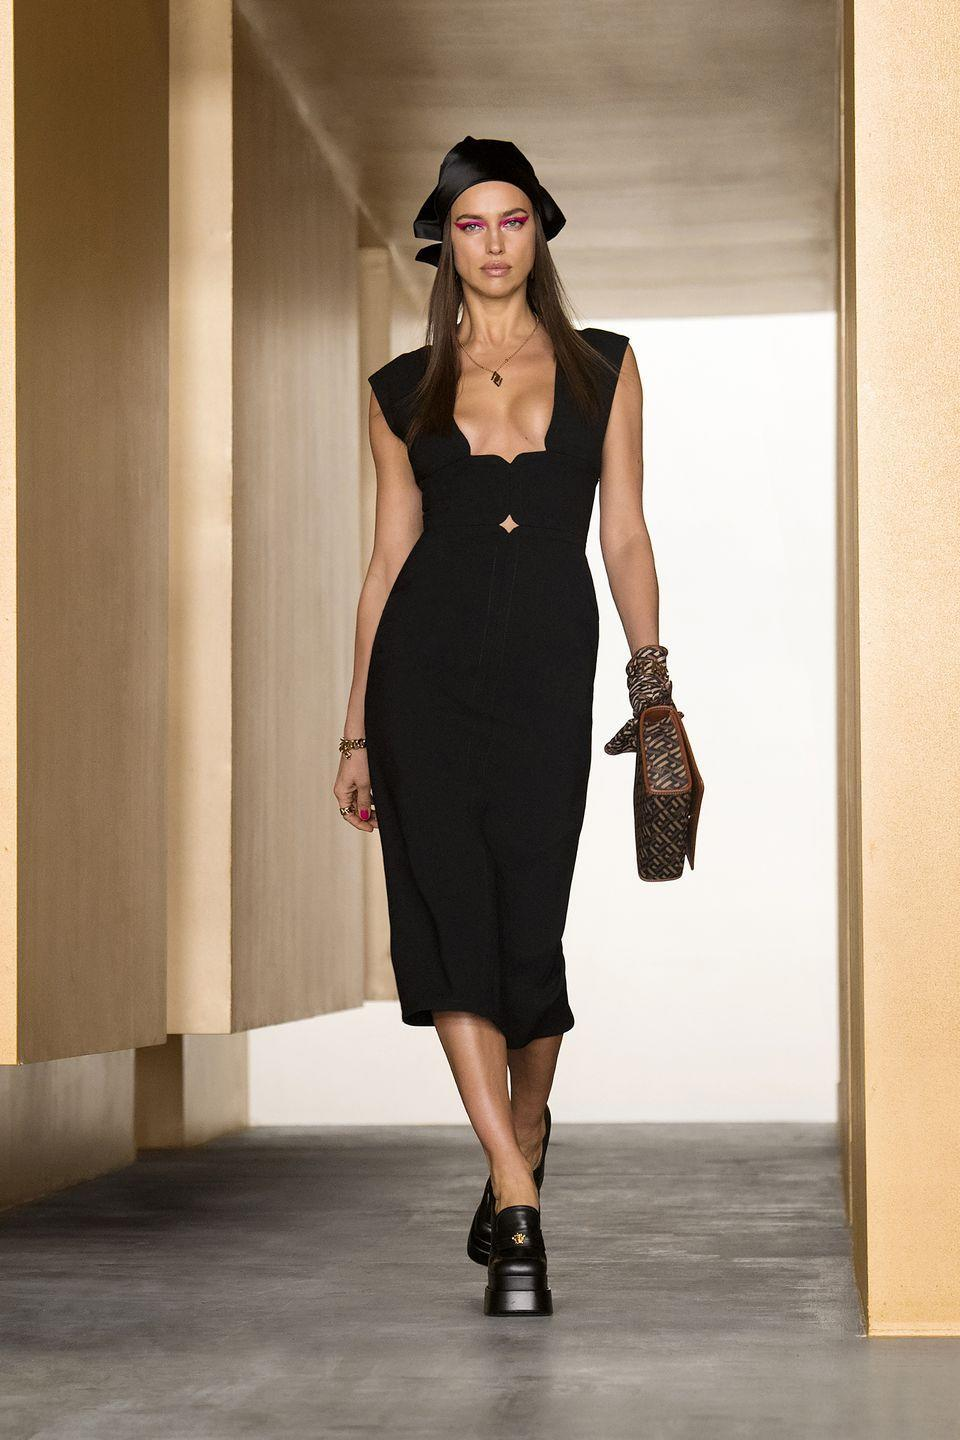 <p>Gigi Hadid returned to the runway for Donatella Versace's Fall 2021 presentation this morning, which showcased slim silhouettes, sharp tailoring, and sultry riffs on power dressing. The looks felt like veritable suits of armor, making their way through the season's Versace maze, inspired by the Greek Key. That La Greca code was combined with the brand's signature logo into a motif that echoed throughout the collection, alongside sultry cuts, mod minis, and eveningwear that will resonate with fashion renegades and red carpet frequenters alike. This season featured a rebellious spirit with looks that felt strong, powerful, and bold, but also pieces that were easy-to-wear, perfect for throwing on post-lockdown to take to the streets by day, or out for a sexy night on the town. <em>—Carrie Goldberg</em></p>